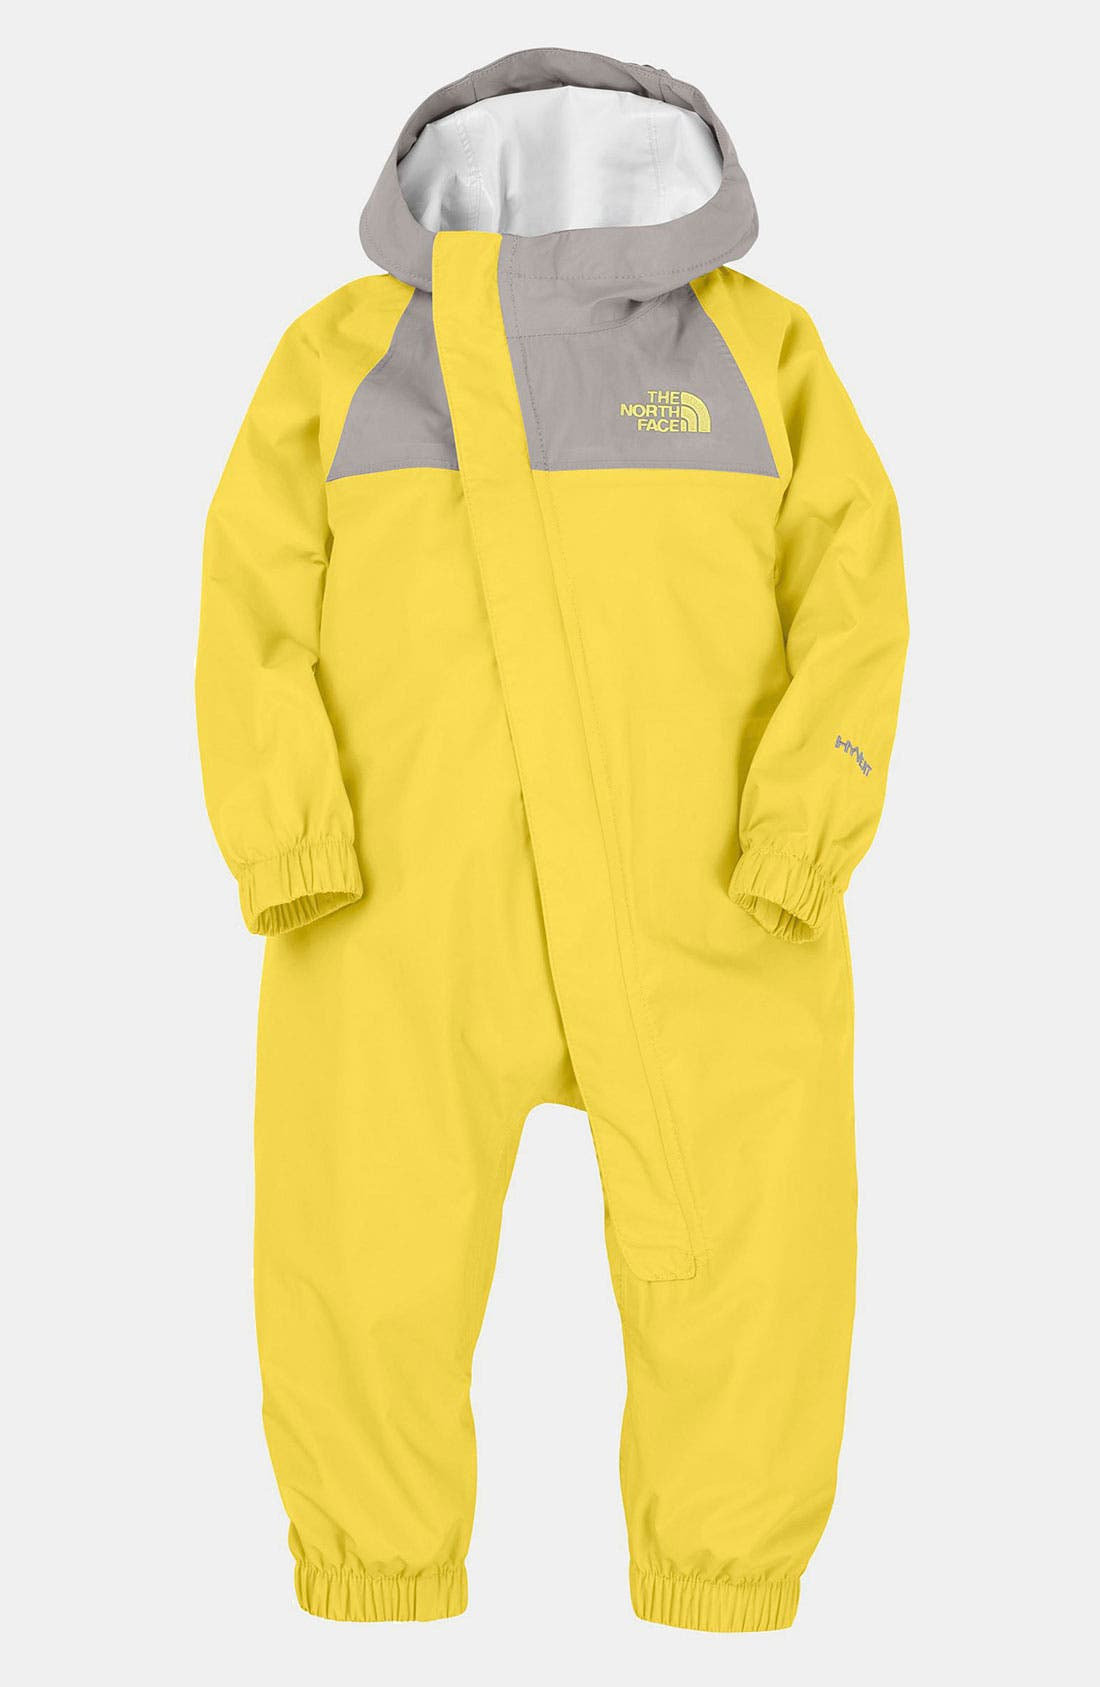 Main Image - The North Face 'Resolve' Rain Suit (Baby)